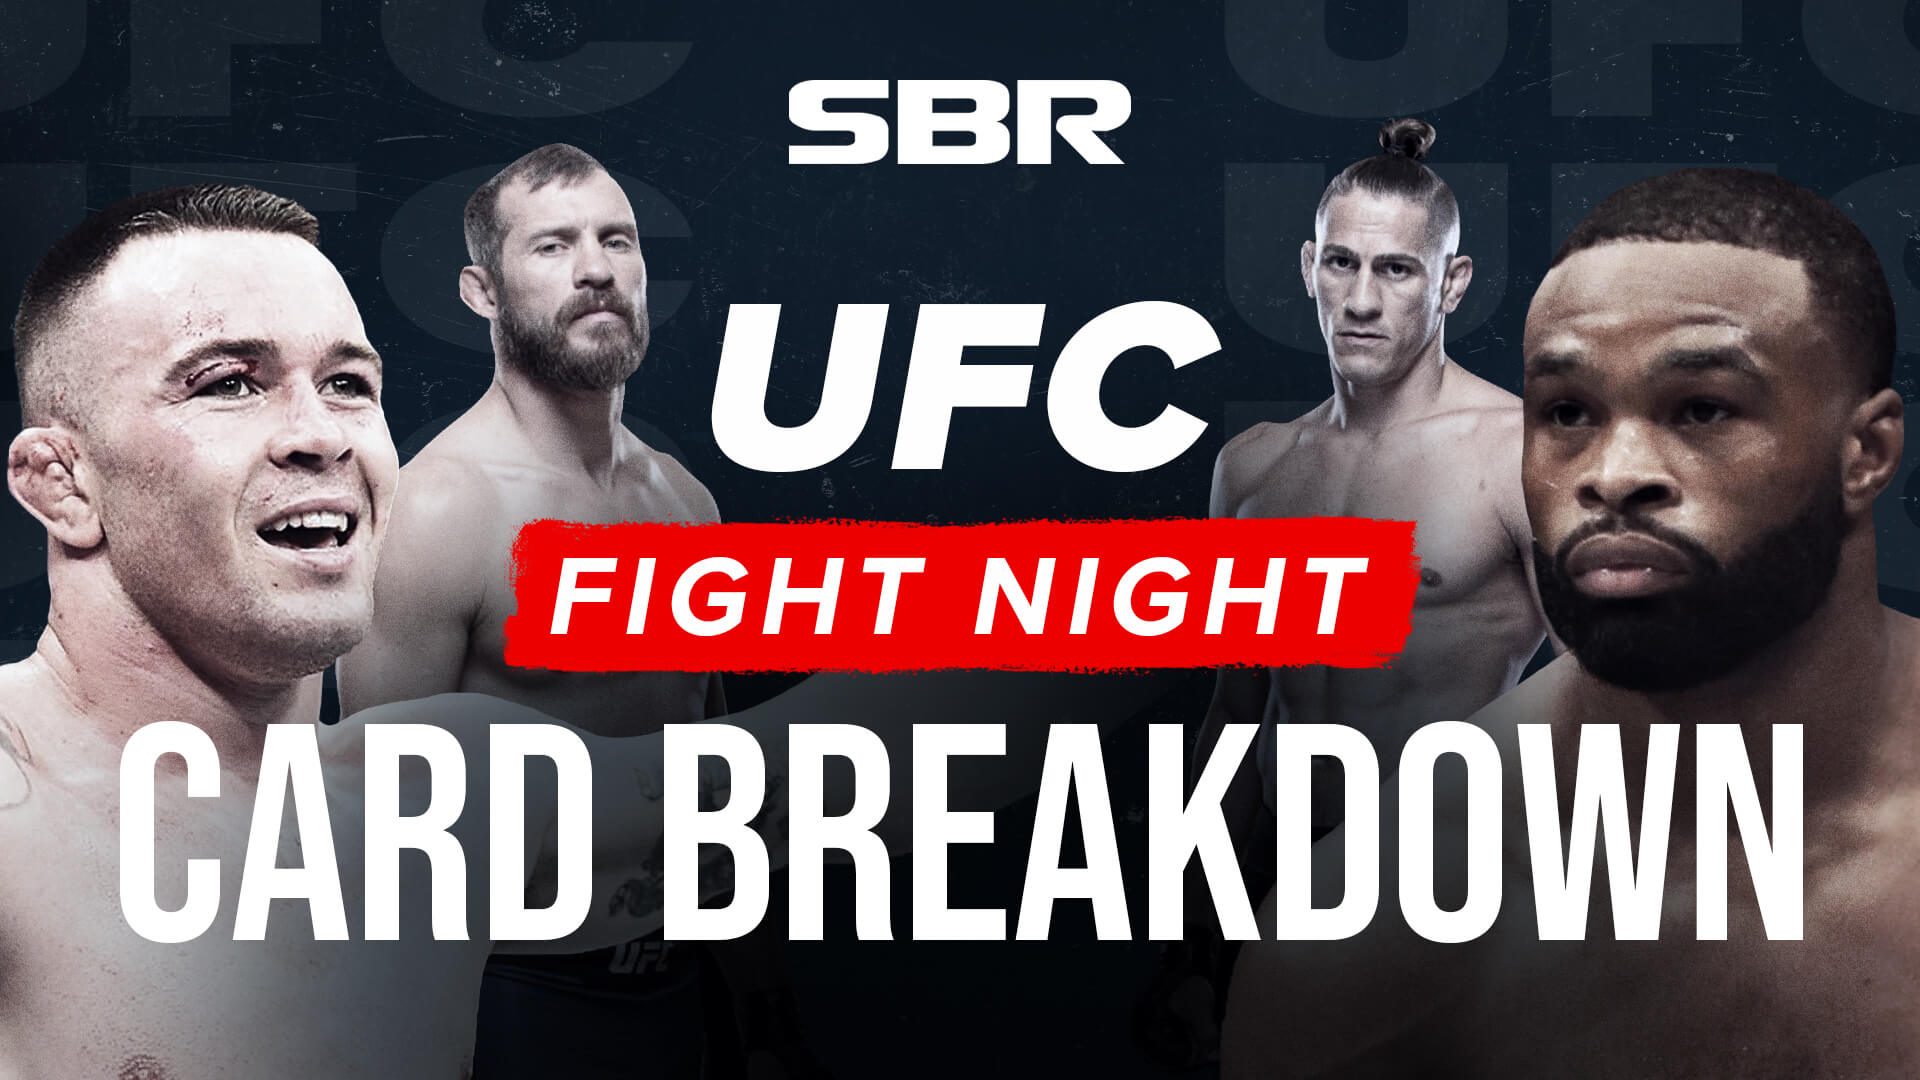 [WATCH] UFC Fight Night: Covington vs. Woodley Picks and Predictions